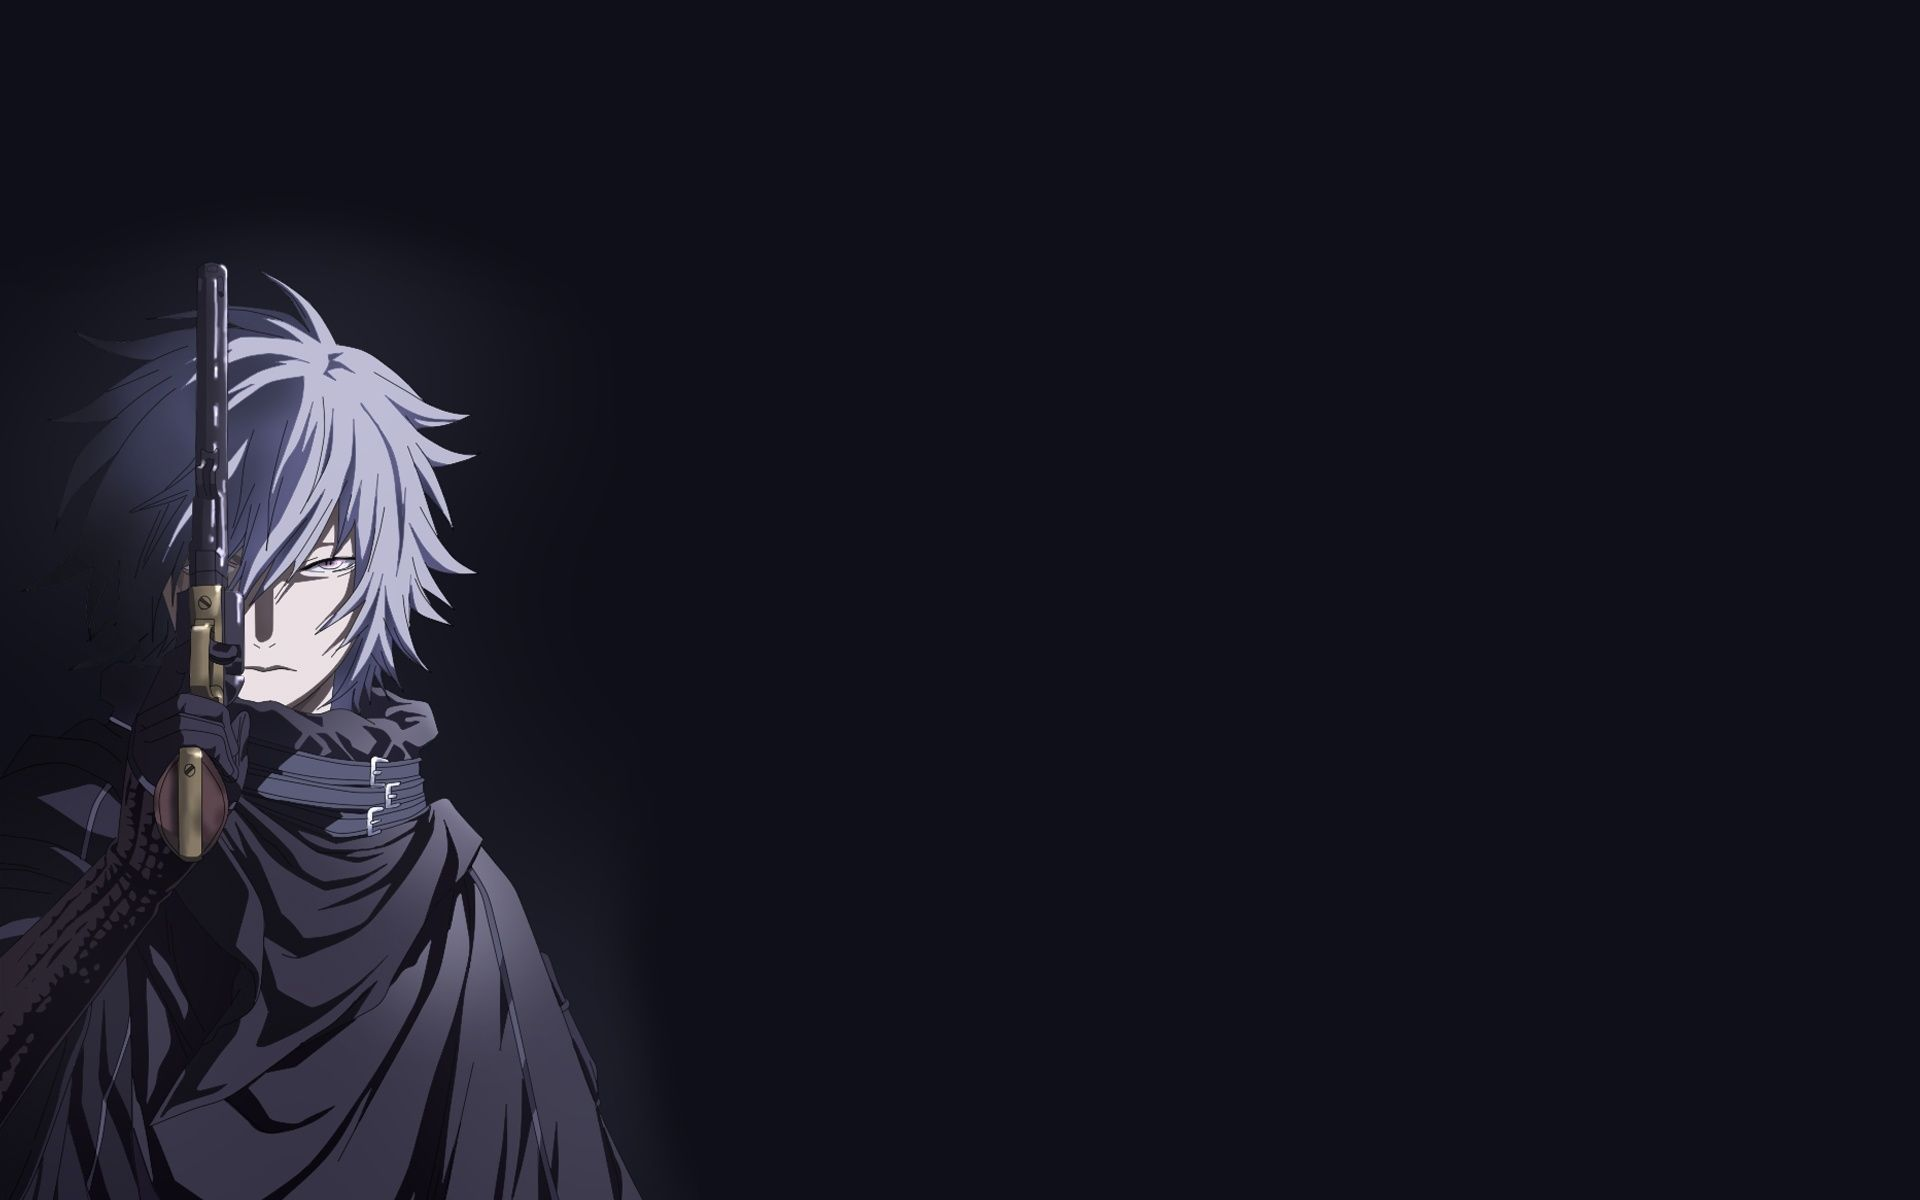 dark anime desktop wallpaper 60129